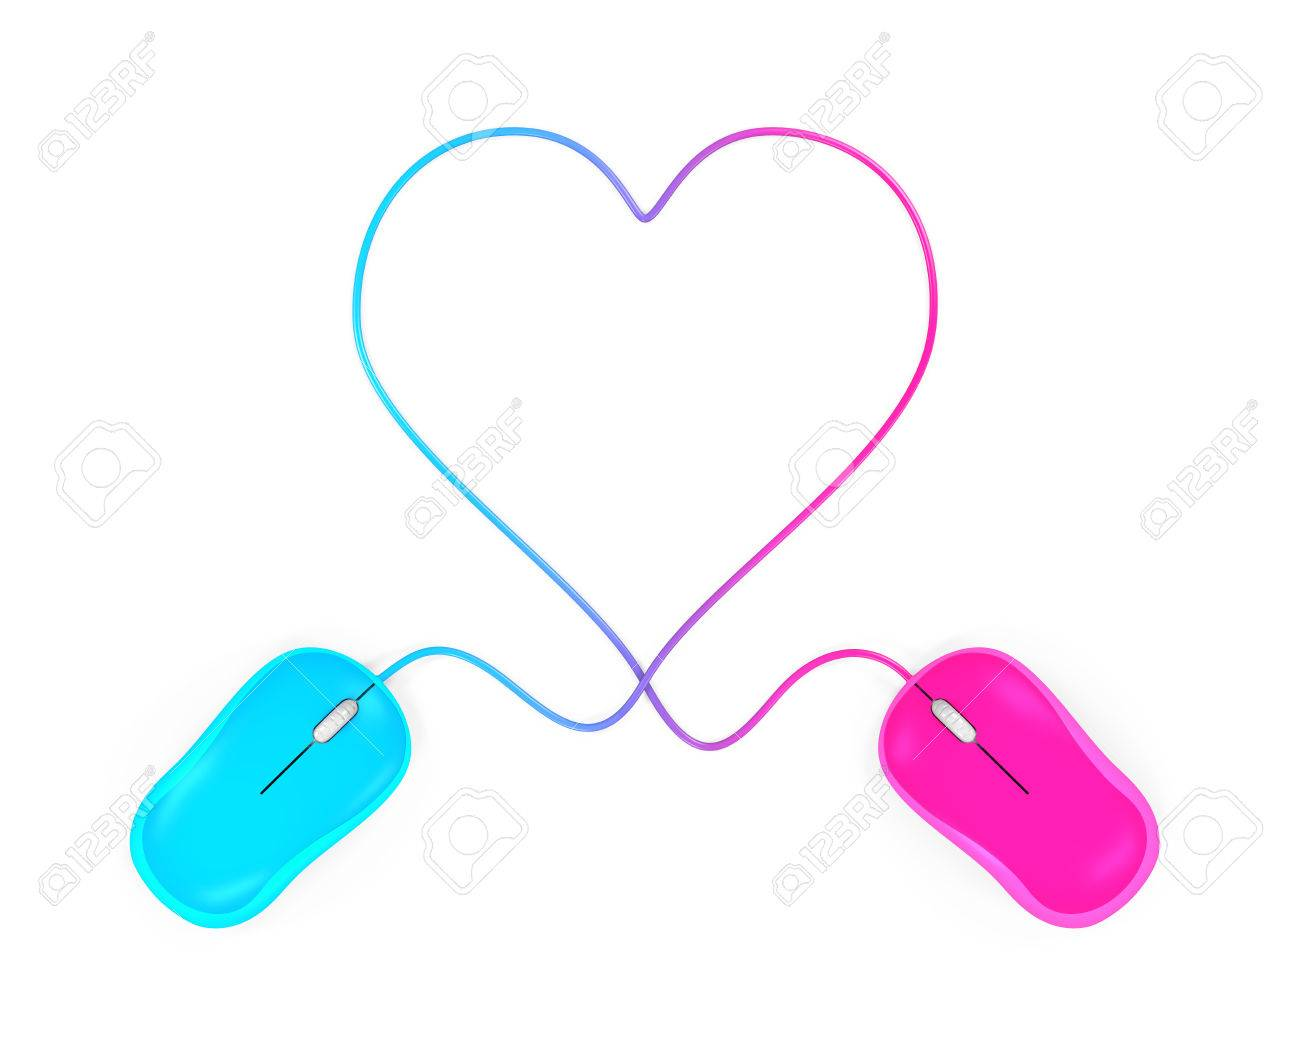 074f7f38bab Heart Shaped and Computer Mouse Stock Photo - 67255813